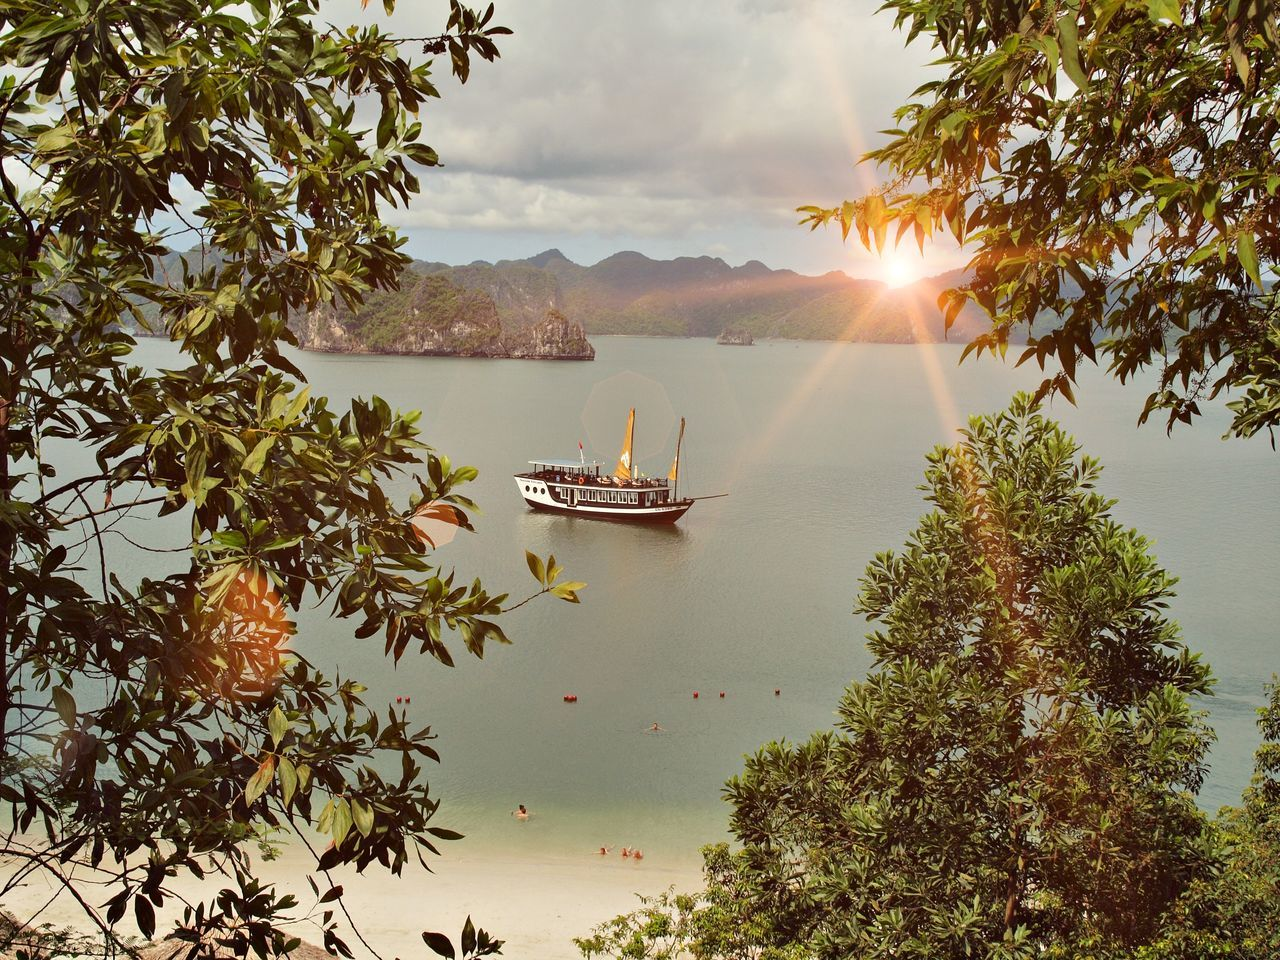 tree, water, nautical vessel, nature, scenics, outdoors, mode of transport, beauty in nature, transportation, sky, day, no people, leaf, growth, mountain, sunset